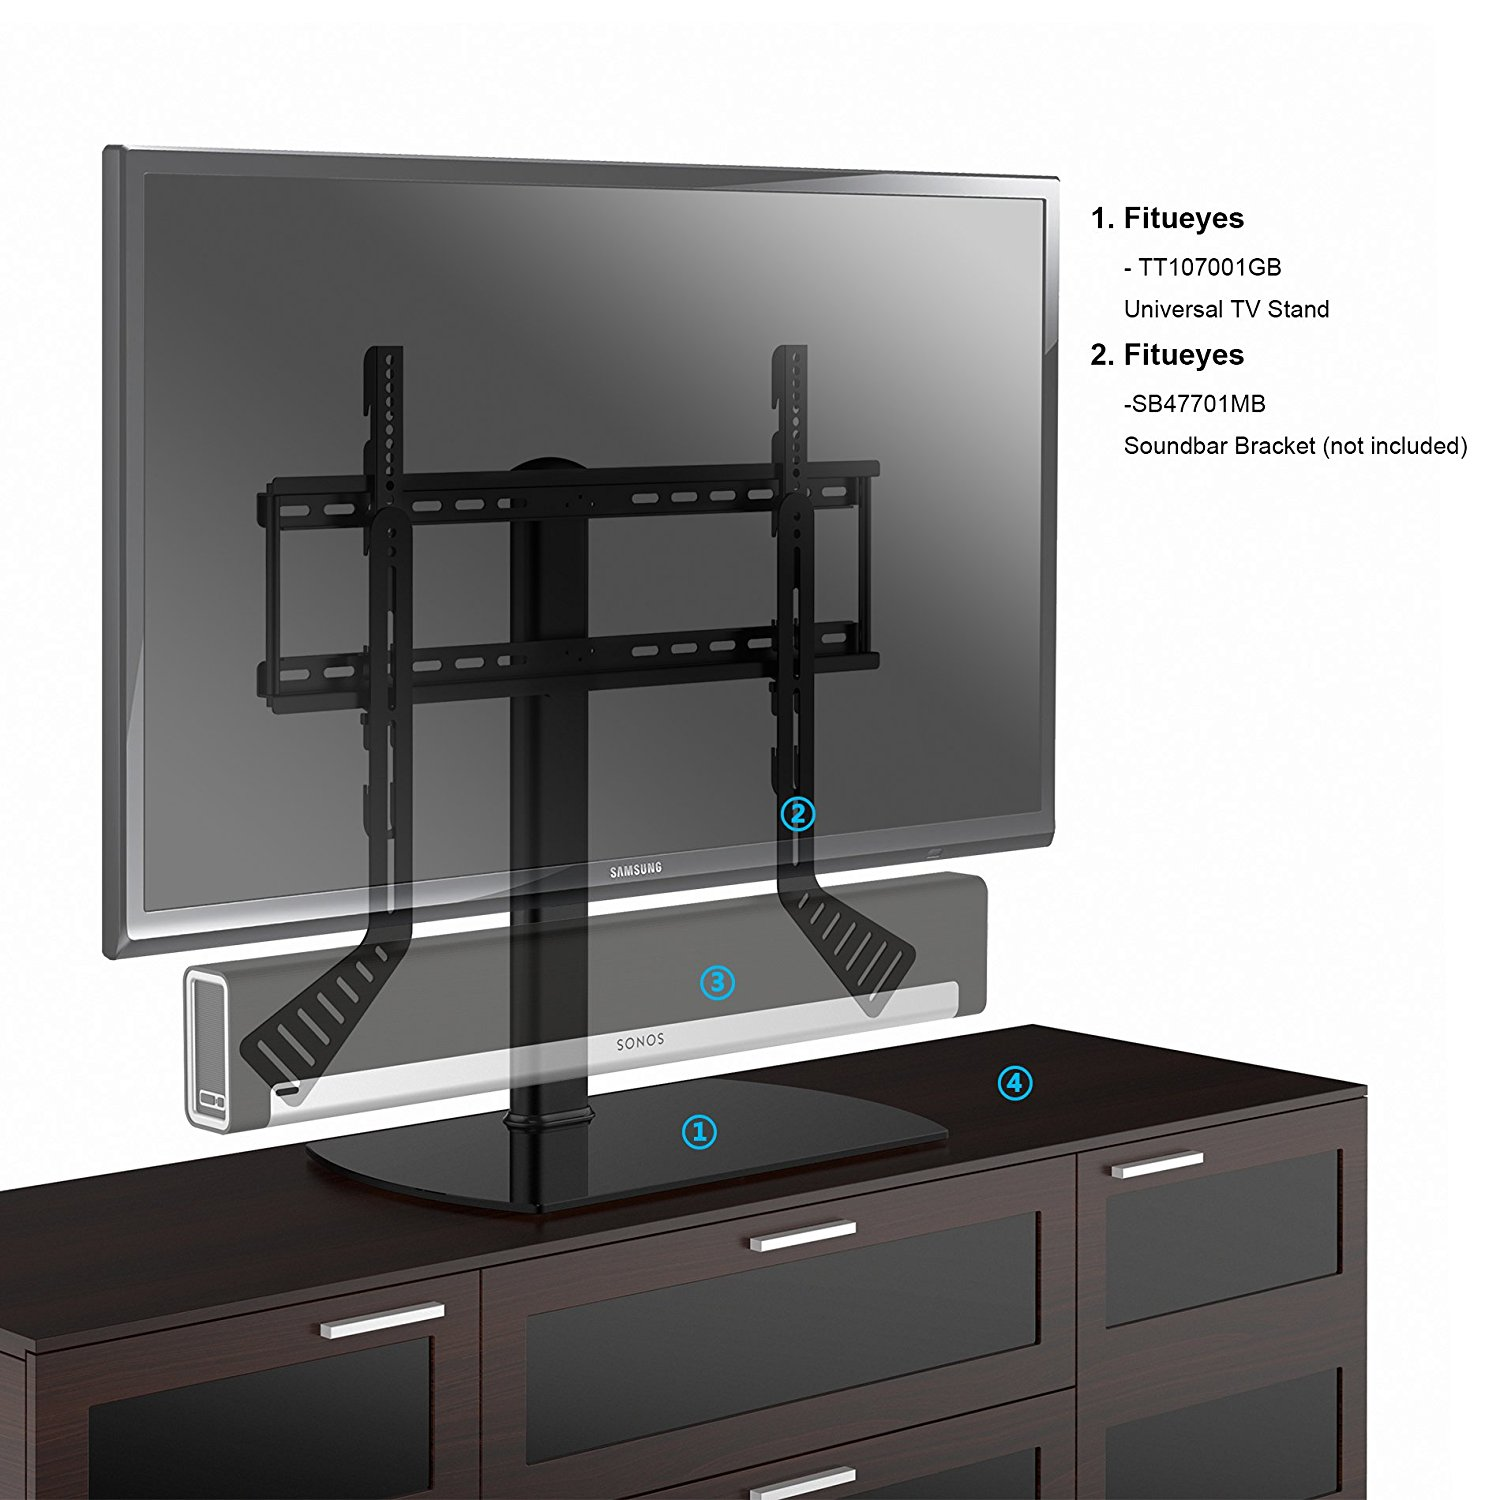 Fitueyes Universal Tabletop Tv Stand Base With Mount For 27 To 65 Inch Samsung Lg Vizio Ftt107001gb